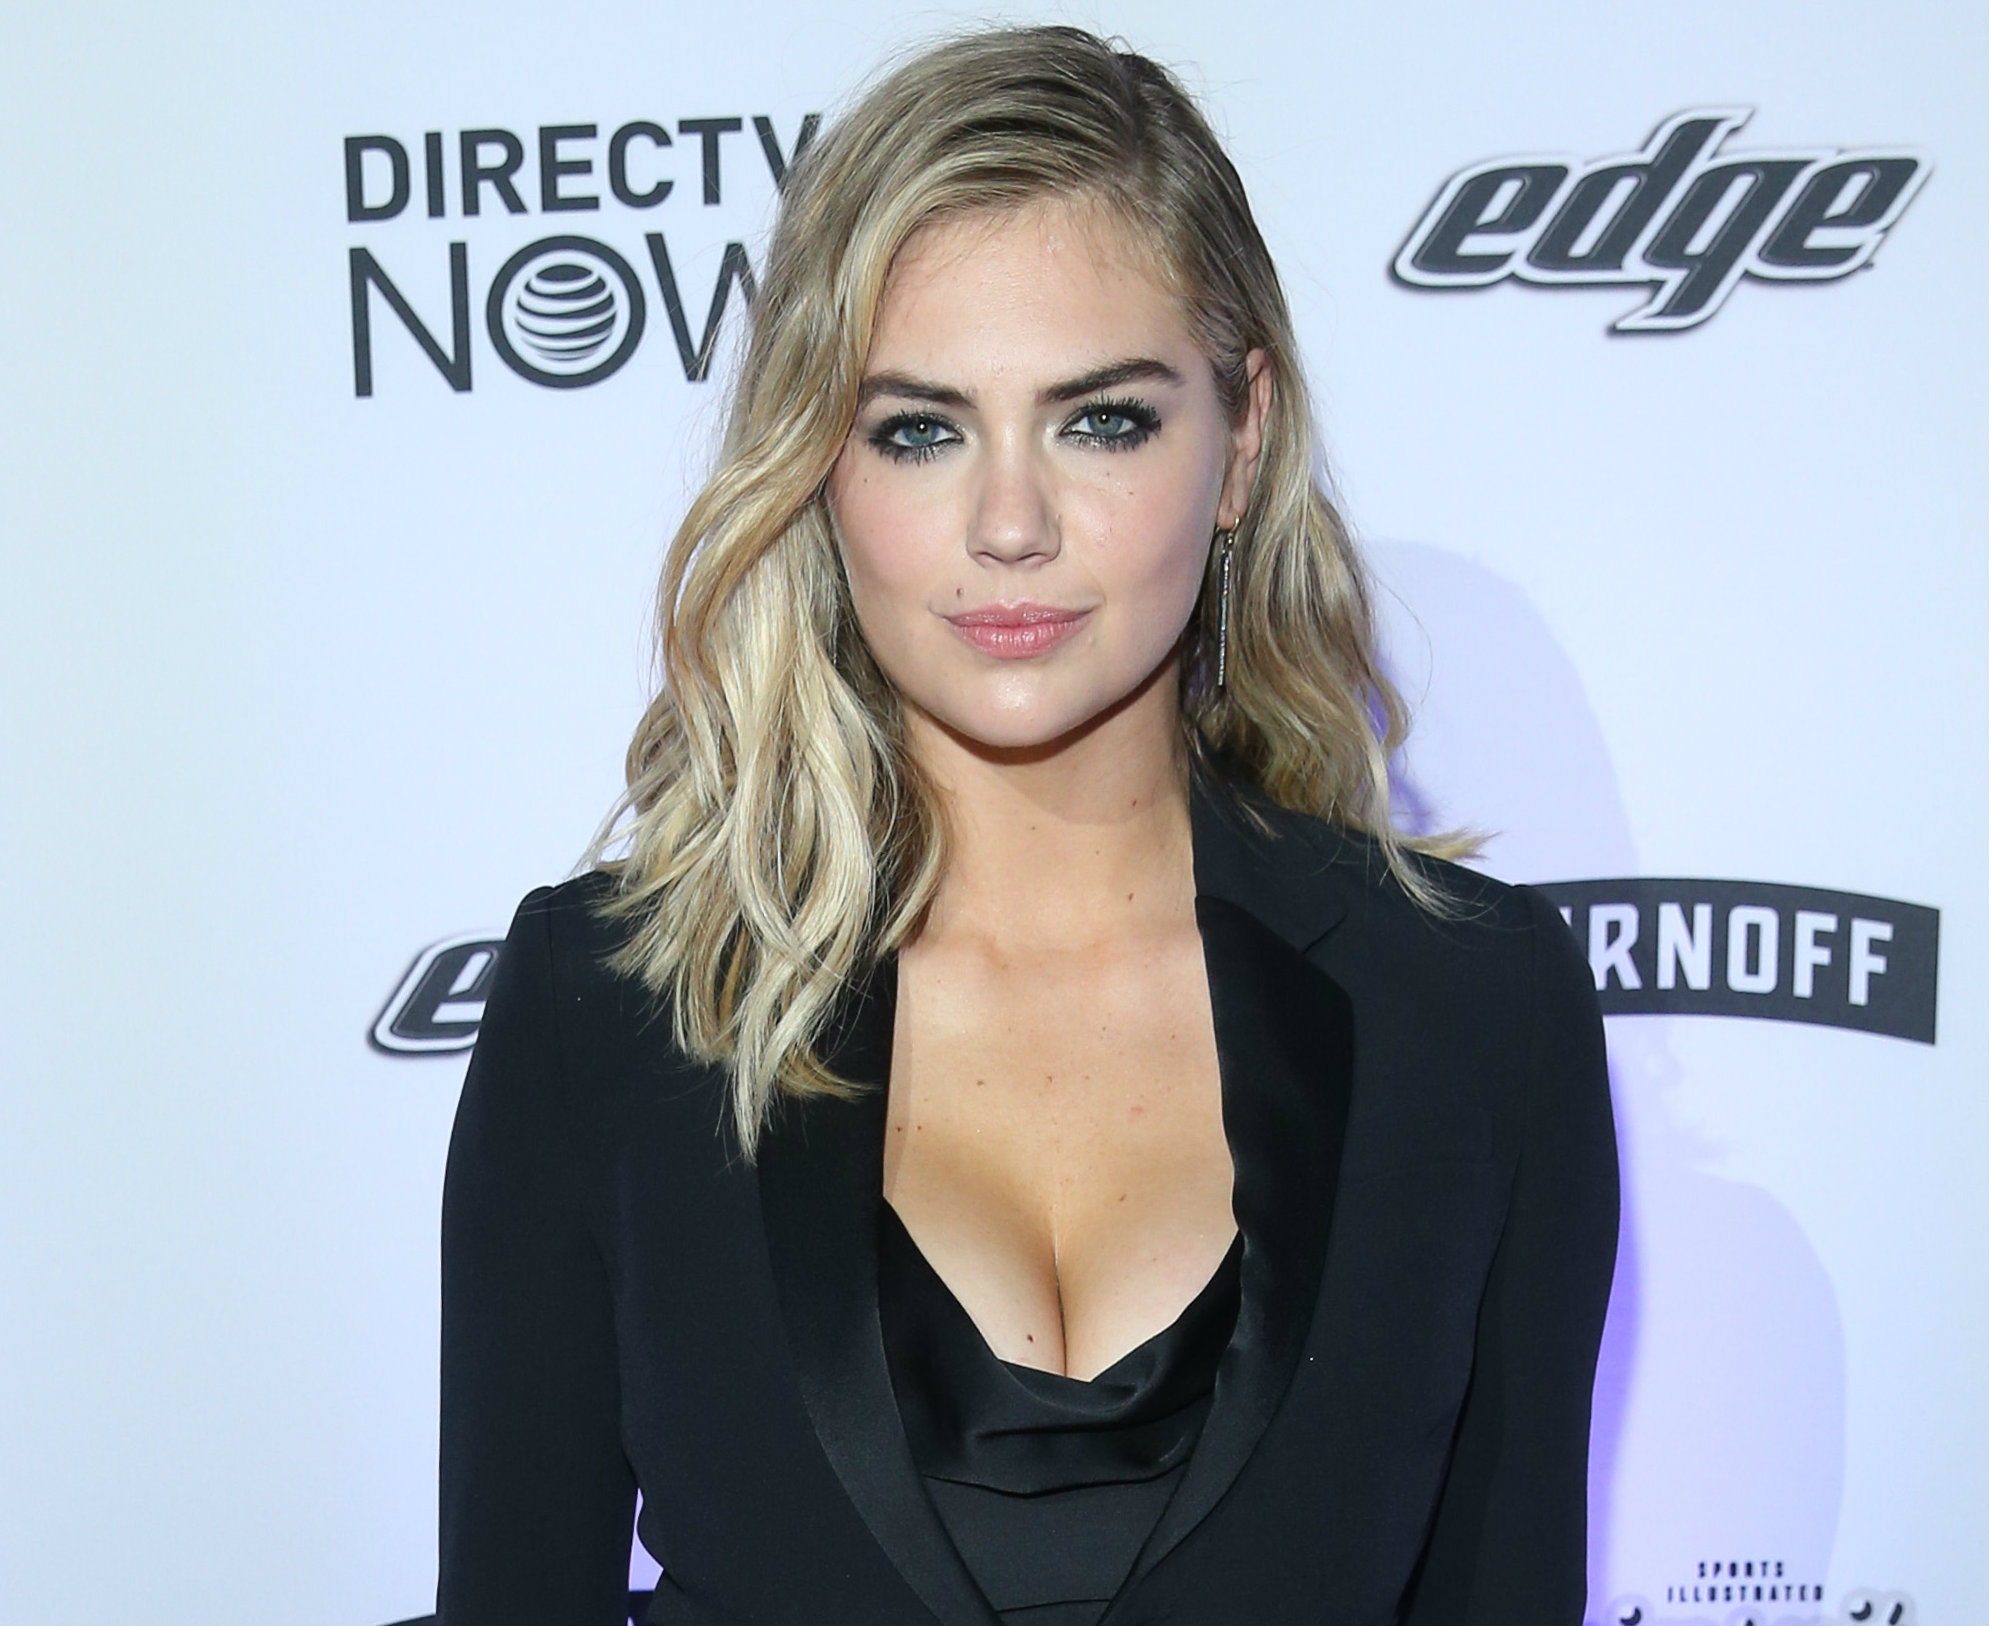 Kate Upton Accuses Guess Co-Founder Paul Marciano of Sexual Harassment